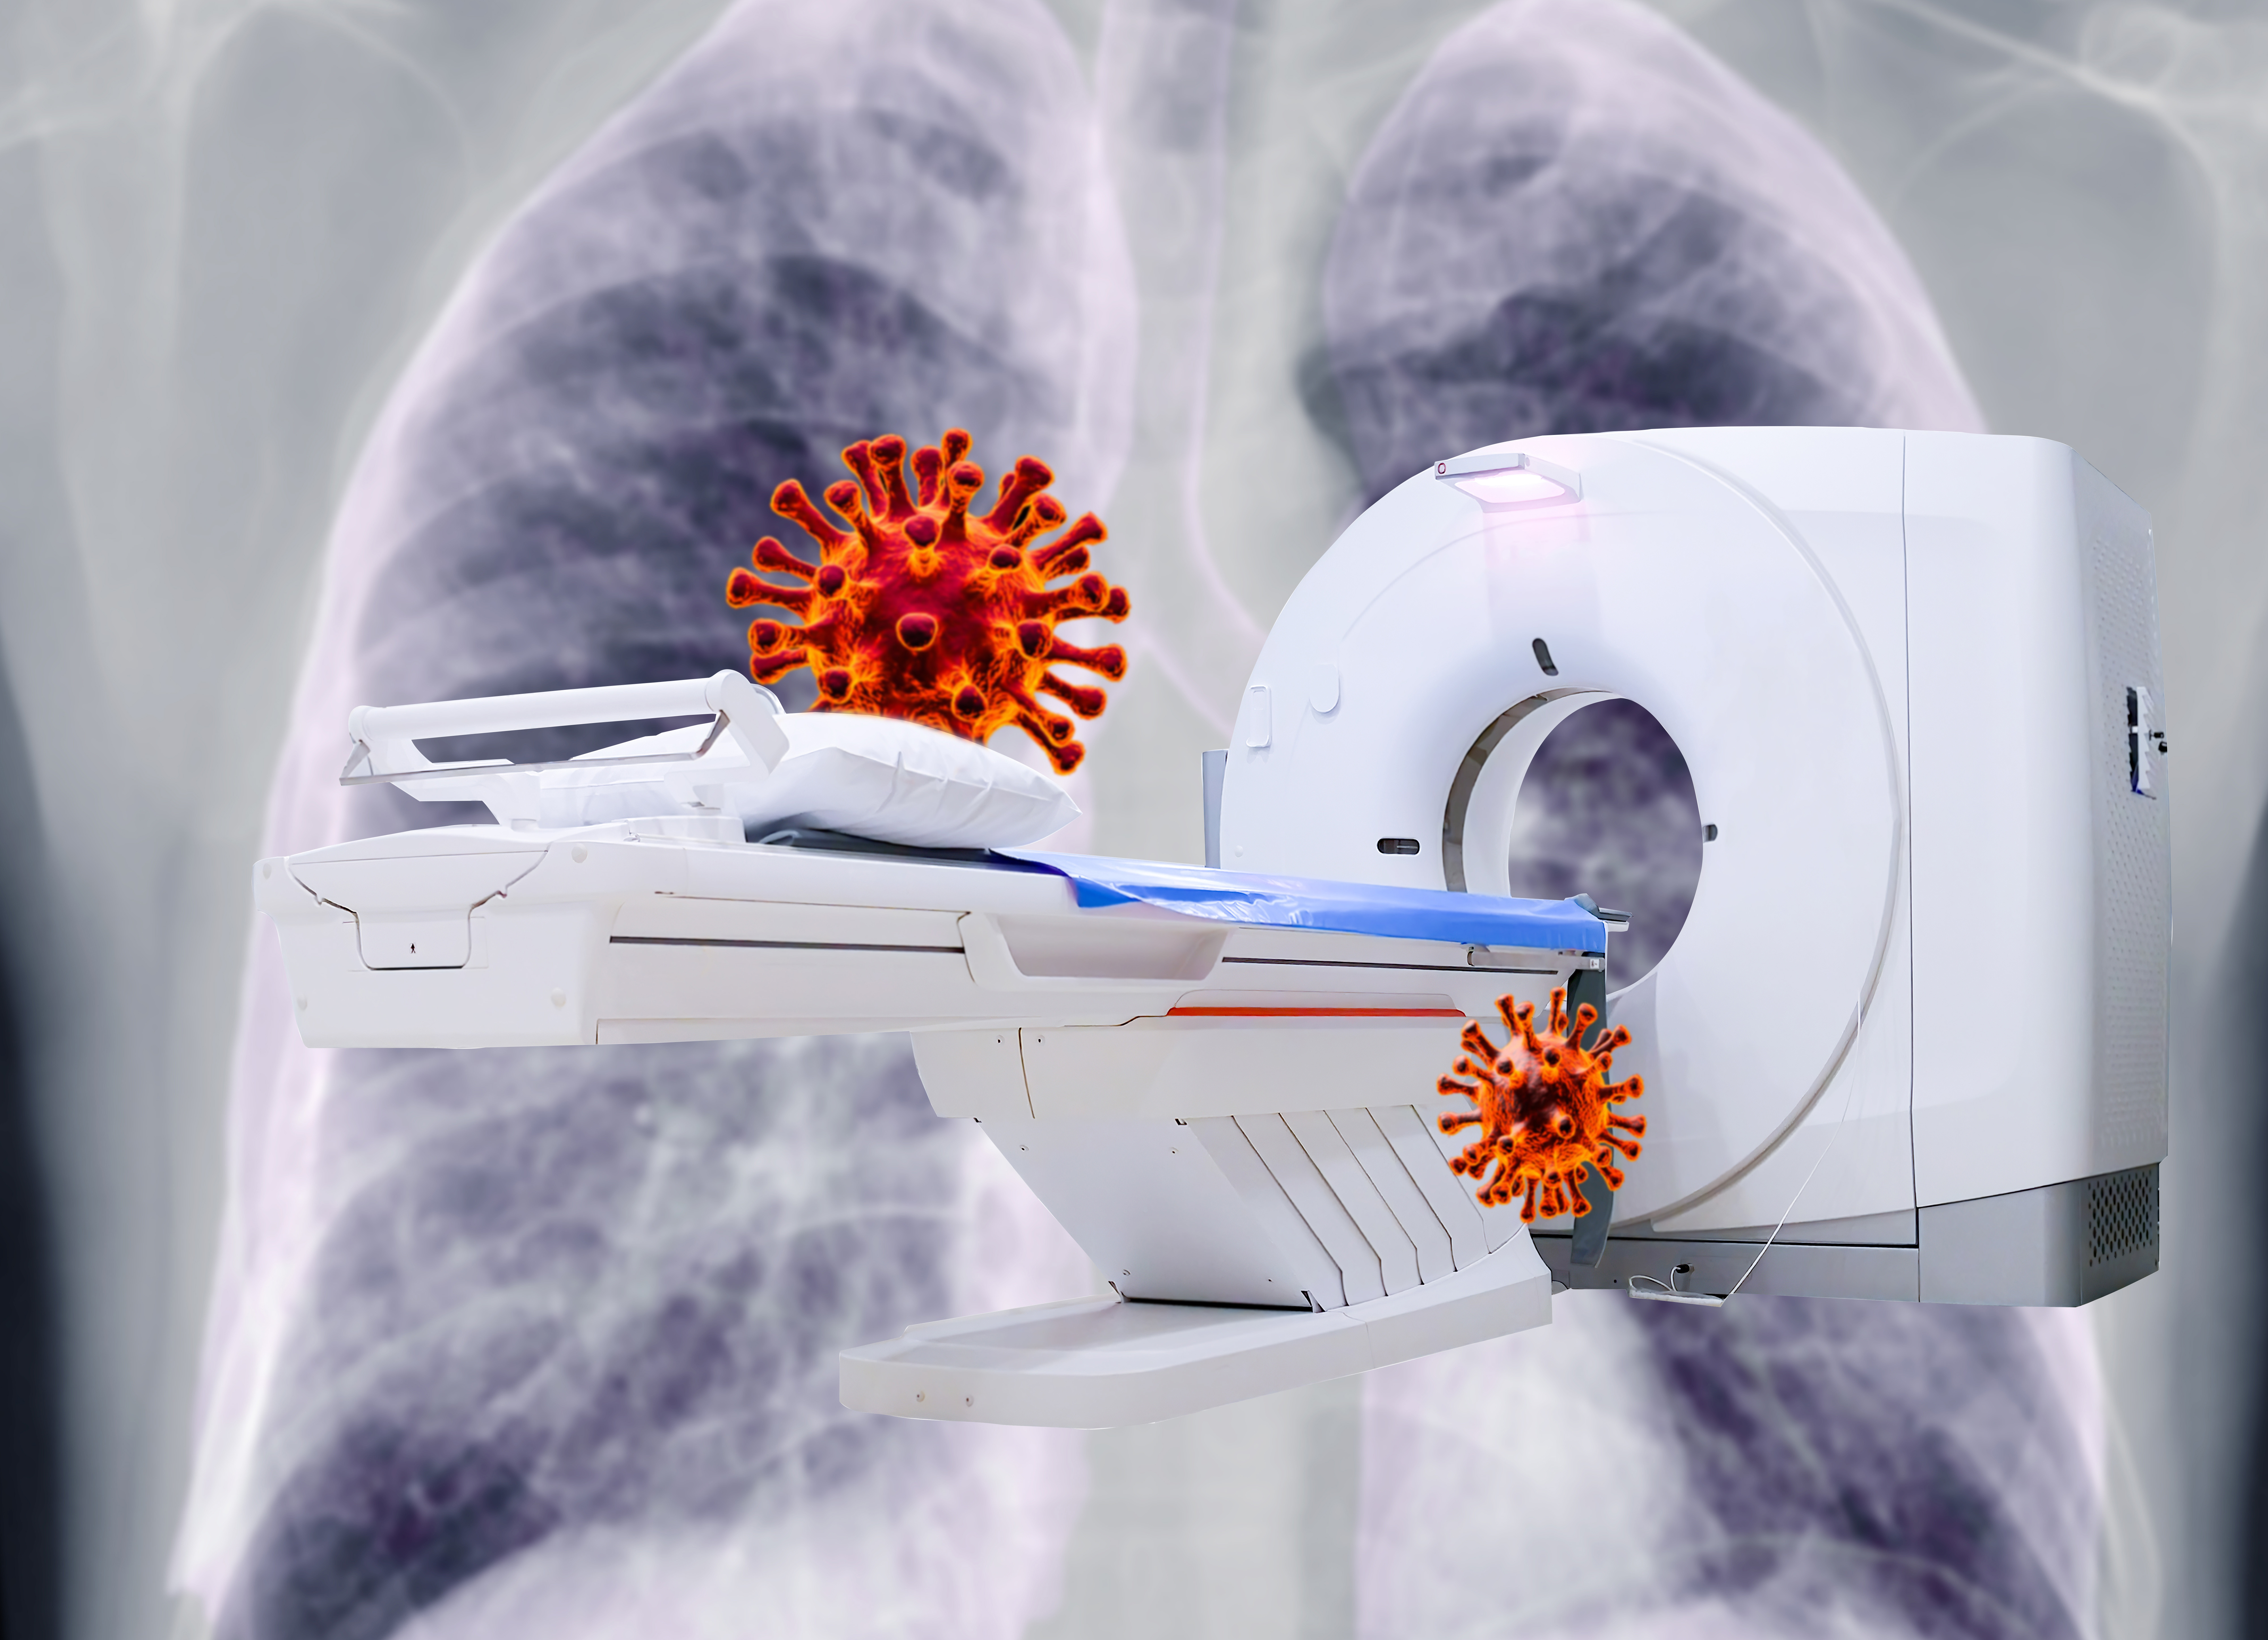 Ct-scan/Covid-19